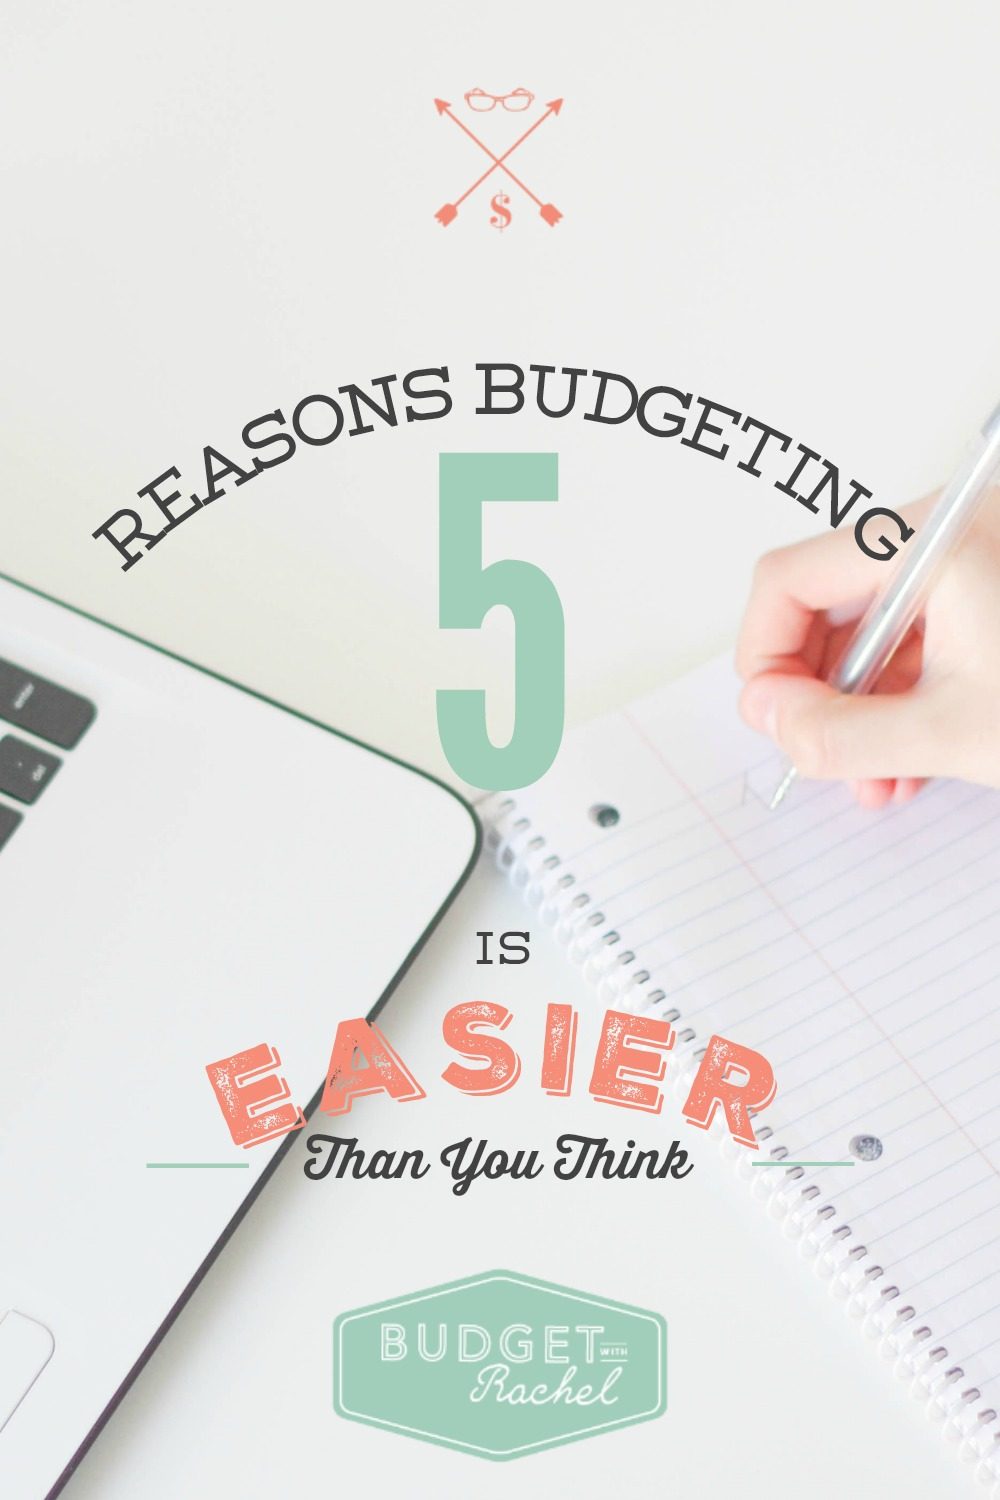 5 Reasons Budgeting is Easier Than You Think. These are all so true!! I knew a couple of these, but #5 is my favorite! This is a great reminder when I'm getting frustrated with my budget. It is way easier than I thought it would be.